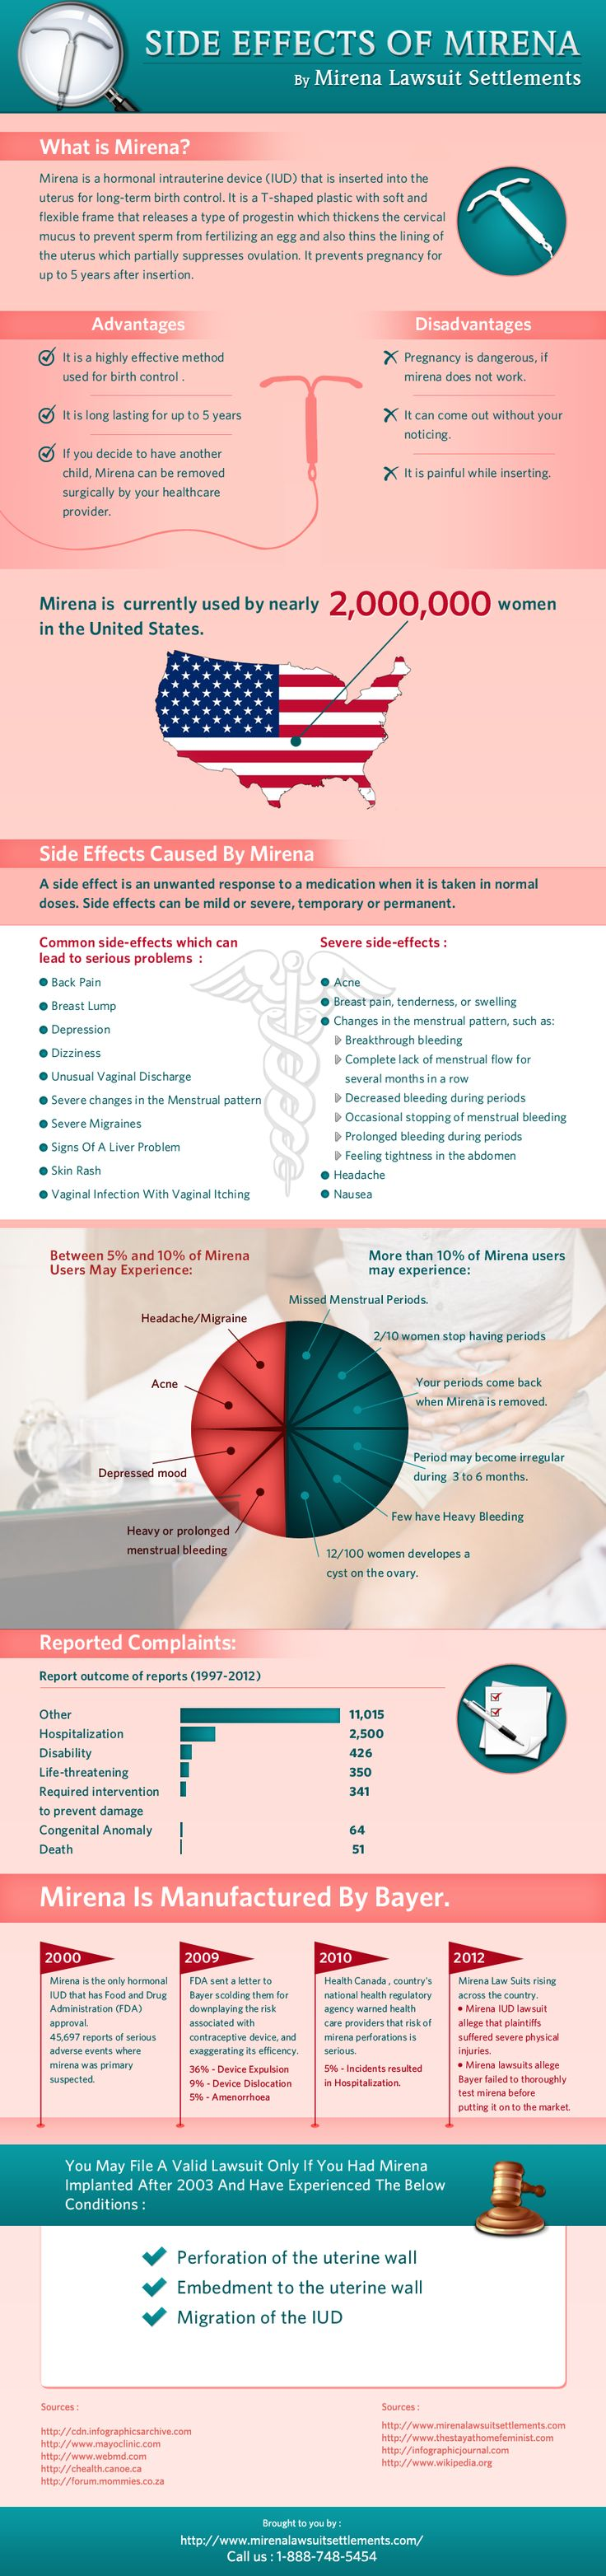 ***Mirena IUD Lawsuit ***The Mirena IUD has hurt many women over the last 15 years, the infographic show in pictures exactly what the Mirena IUD have done. For women with side effects there is hope for a possible compensation from the manufacture Bayer, but it will not come with out a Mirena Lawsuit filed by a lawyer. http://www.mirenalawsuitsettlements.com